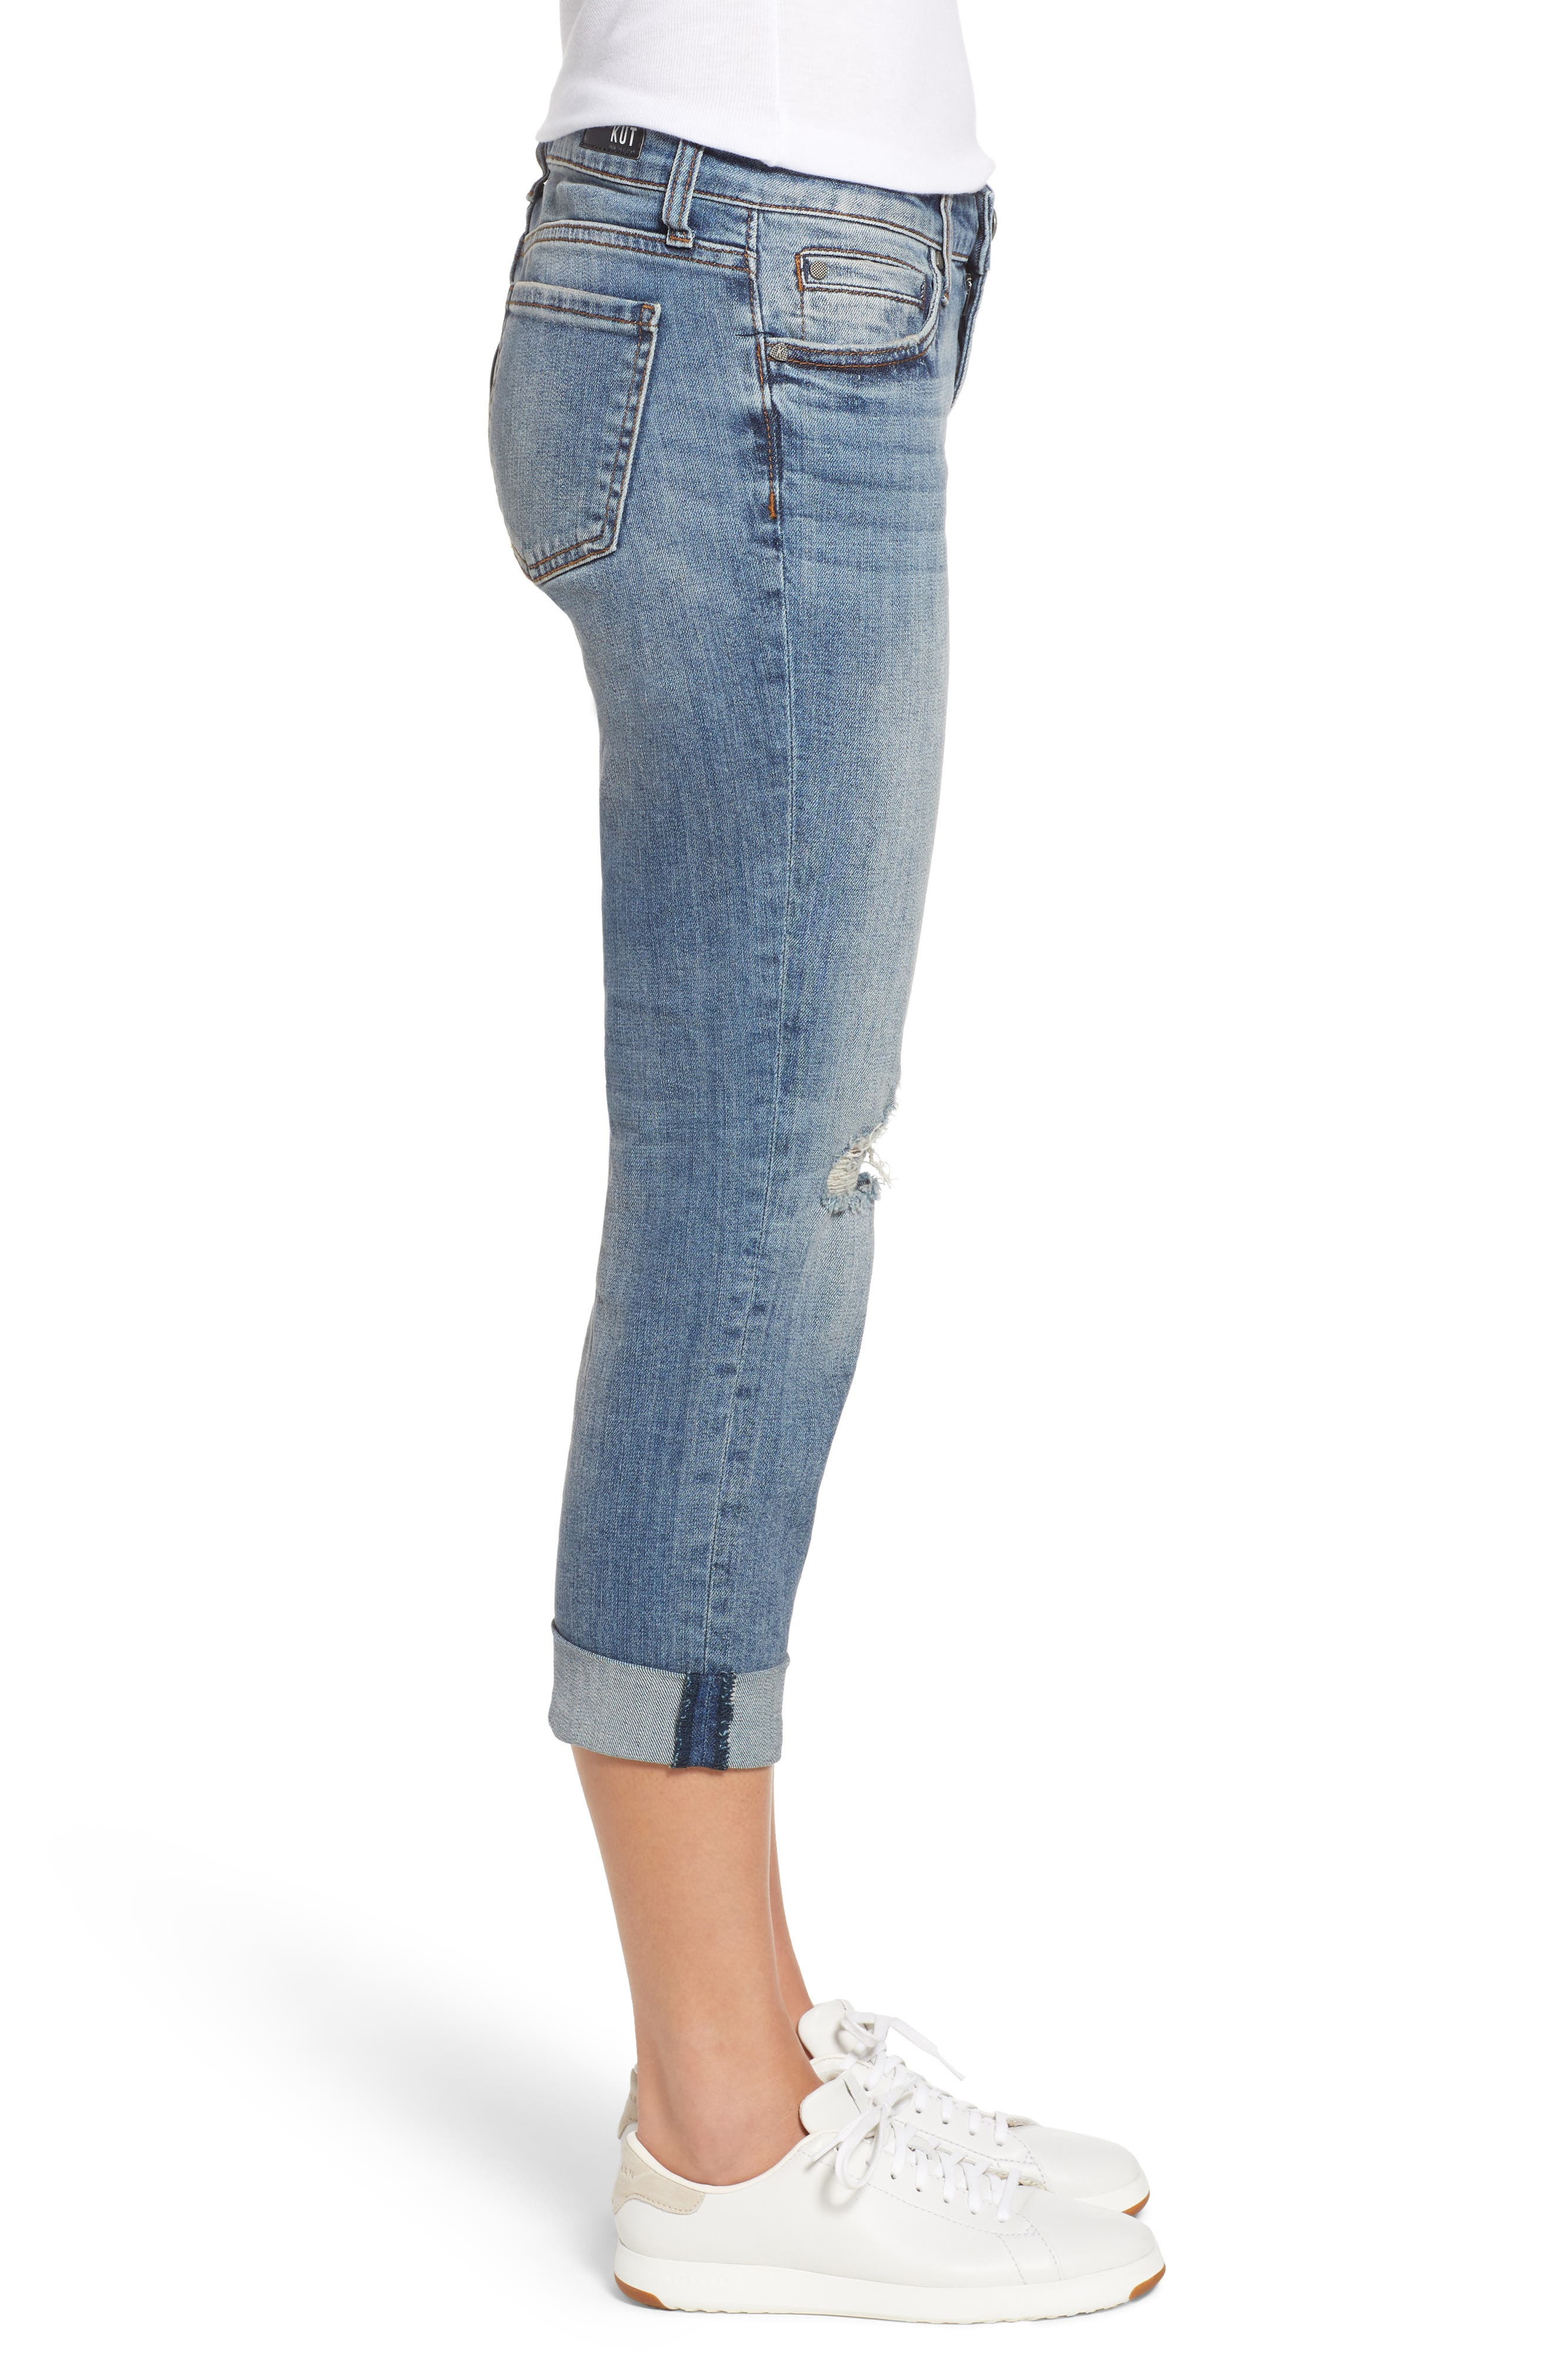 Catherine Ripped Straight Leg Ankle Jeans,                             Alternate thumbnail 3, color,                             400